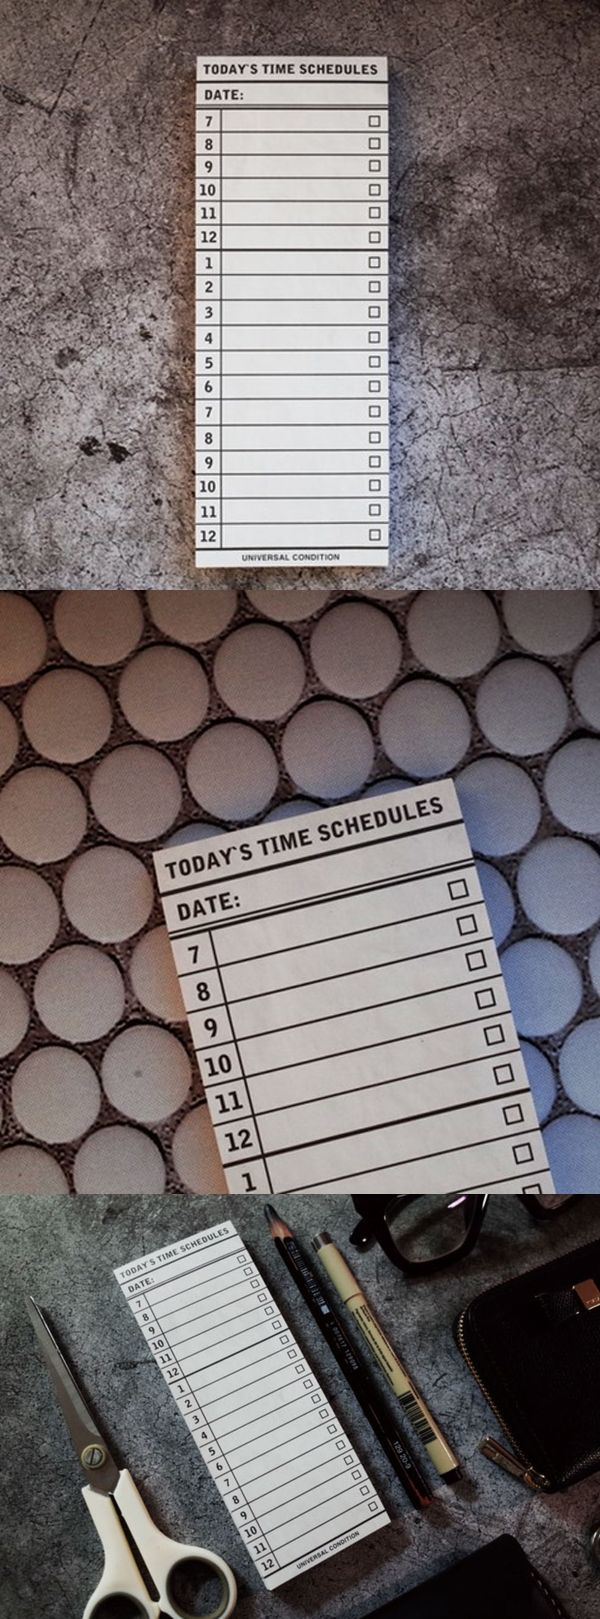 It is a simple yet powerful daily planning note to help you to live your life to the fullest! By planning your schedule in hourly time slots, you can manage your daily tasks with greater management. Once you are done planning, tear the sheet from the pad and carry it with you to check off the things you've done!